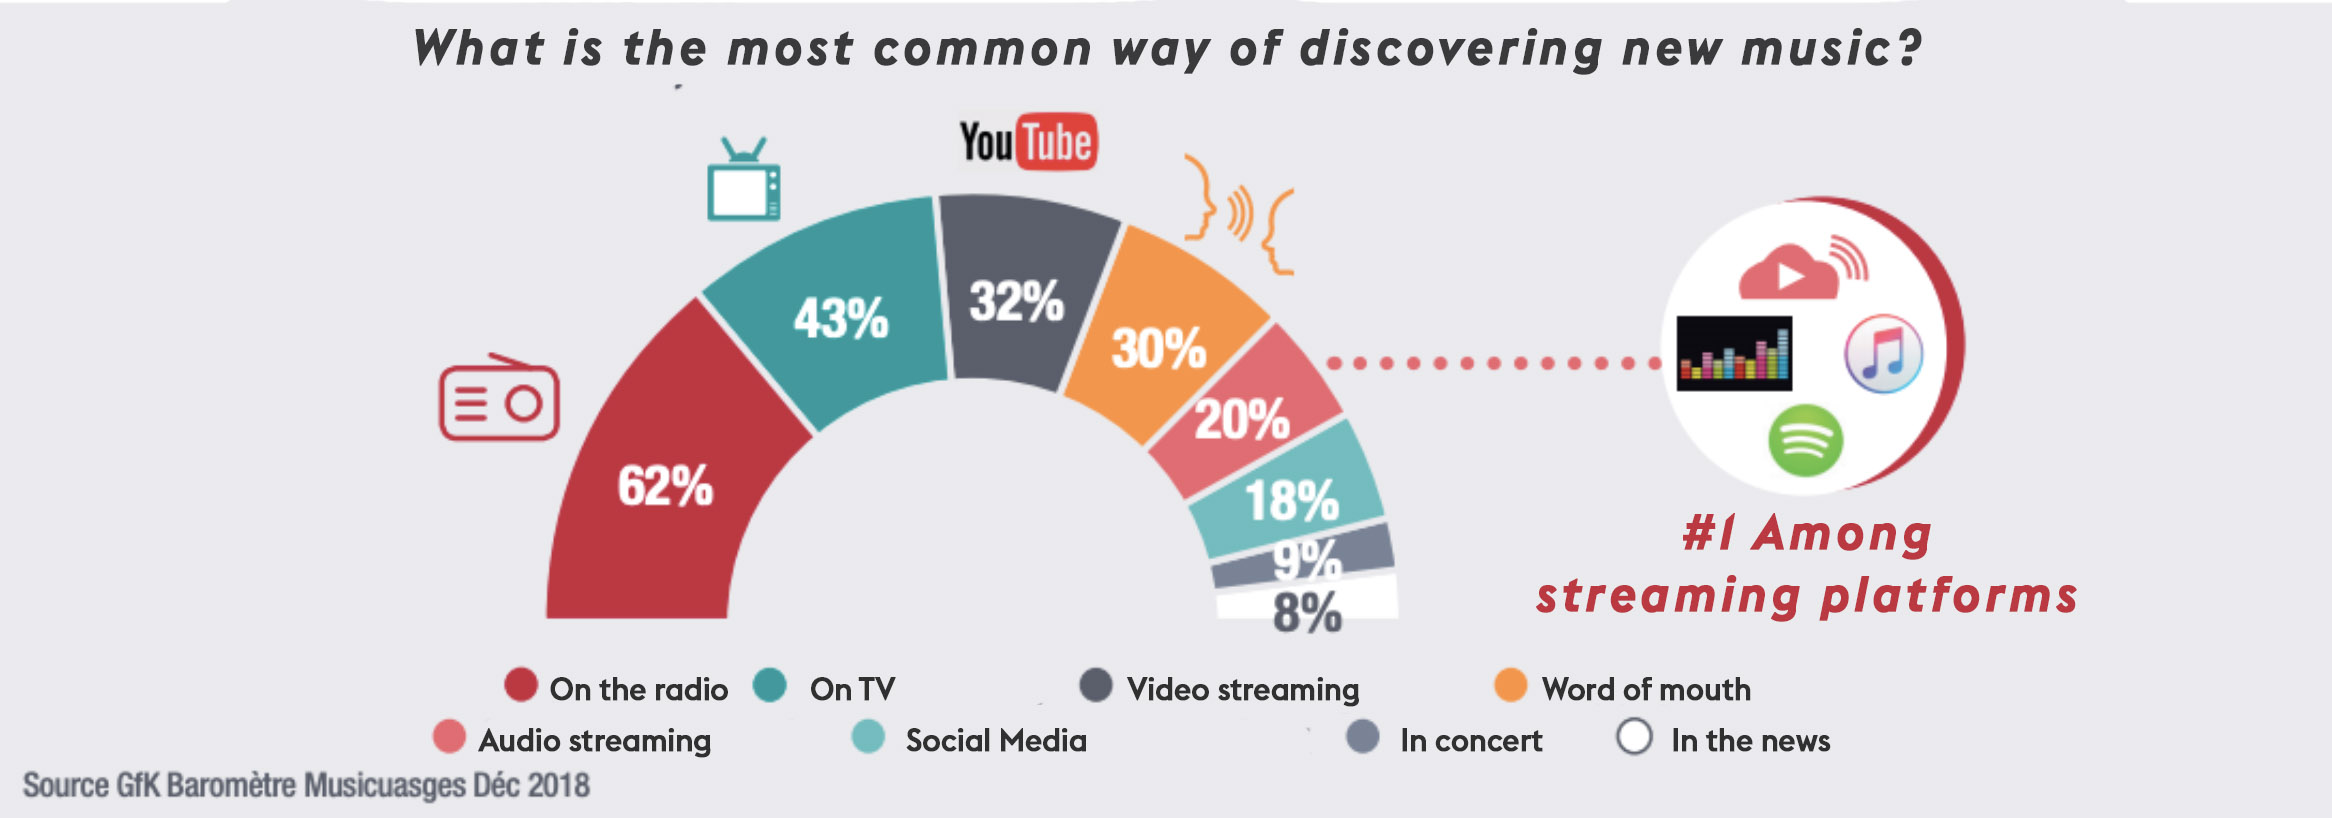 What is the most common way of discovering new music?